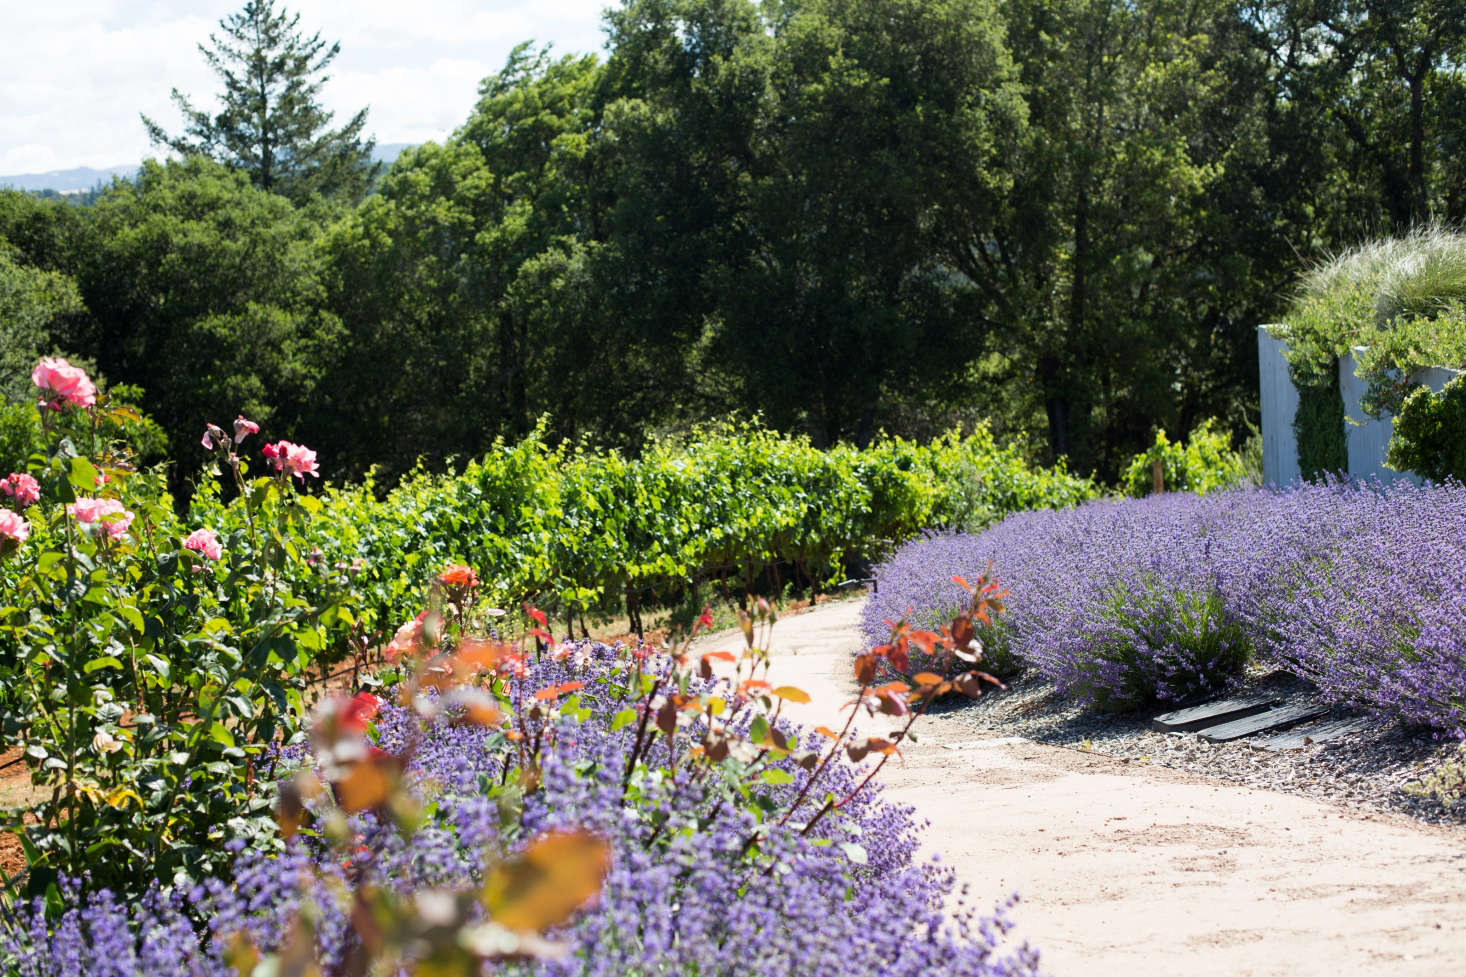 Lavender borders a path of decomposed granite. Photograph by Mimi Giboin. For more, see Landscape Architect Visit: Vineyard Views in Healdsburg's Dry Creek Valley.